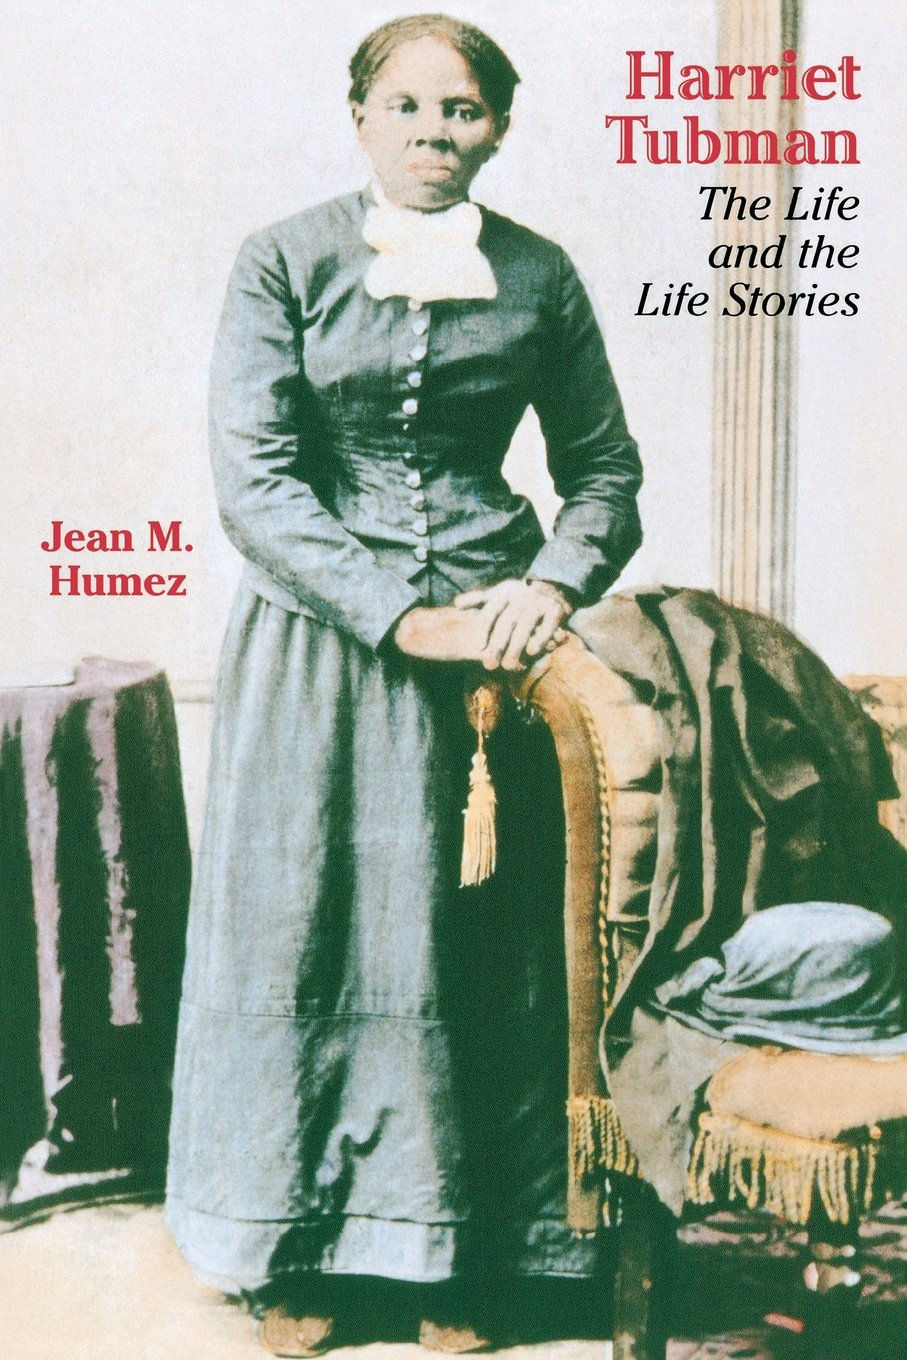 Harriet Tubman: The Life and the Life Stories by Jean M Humez